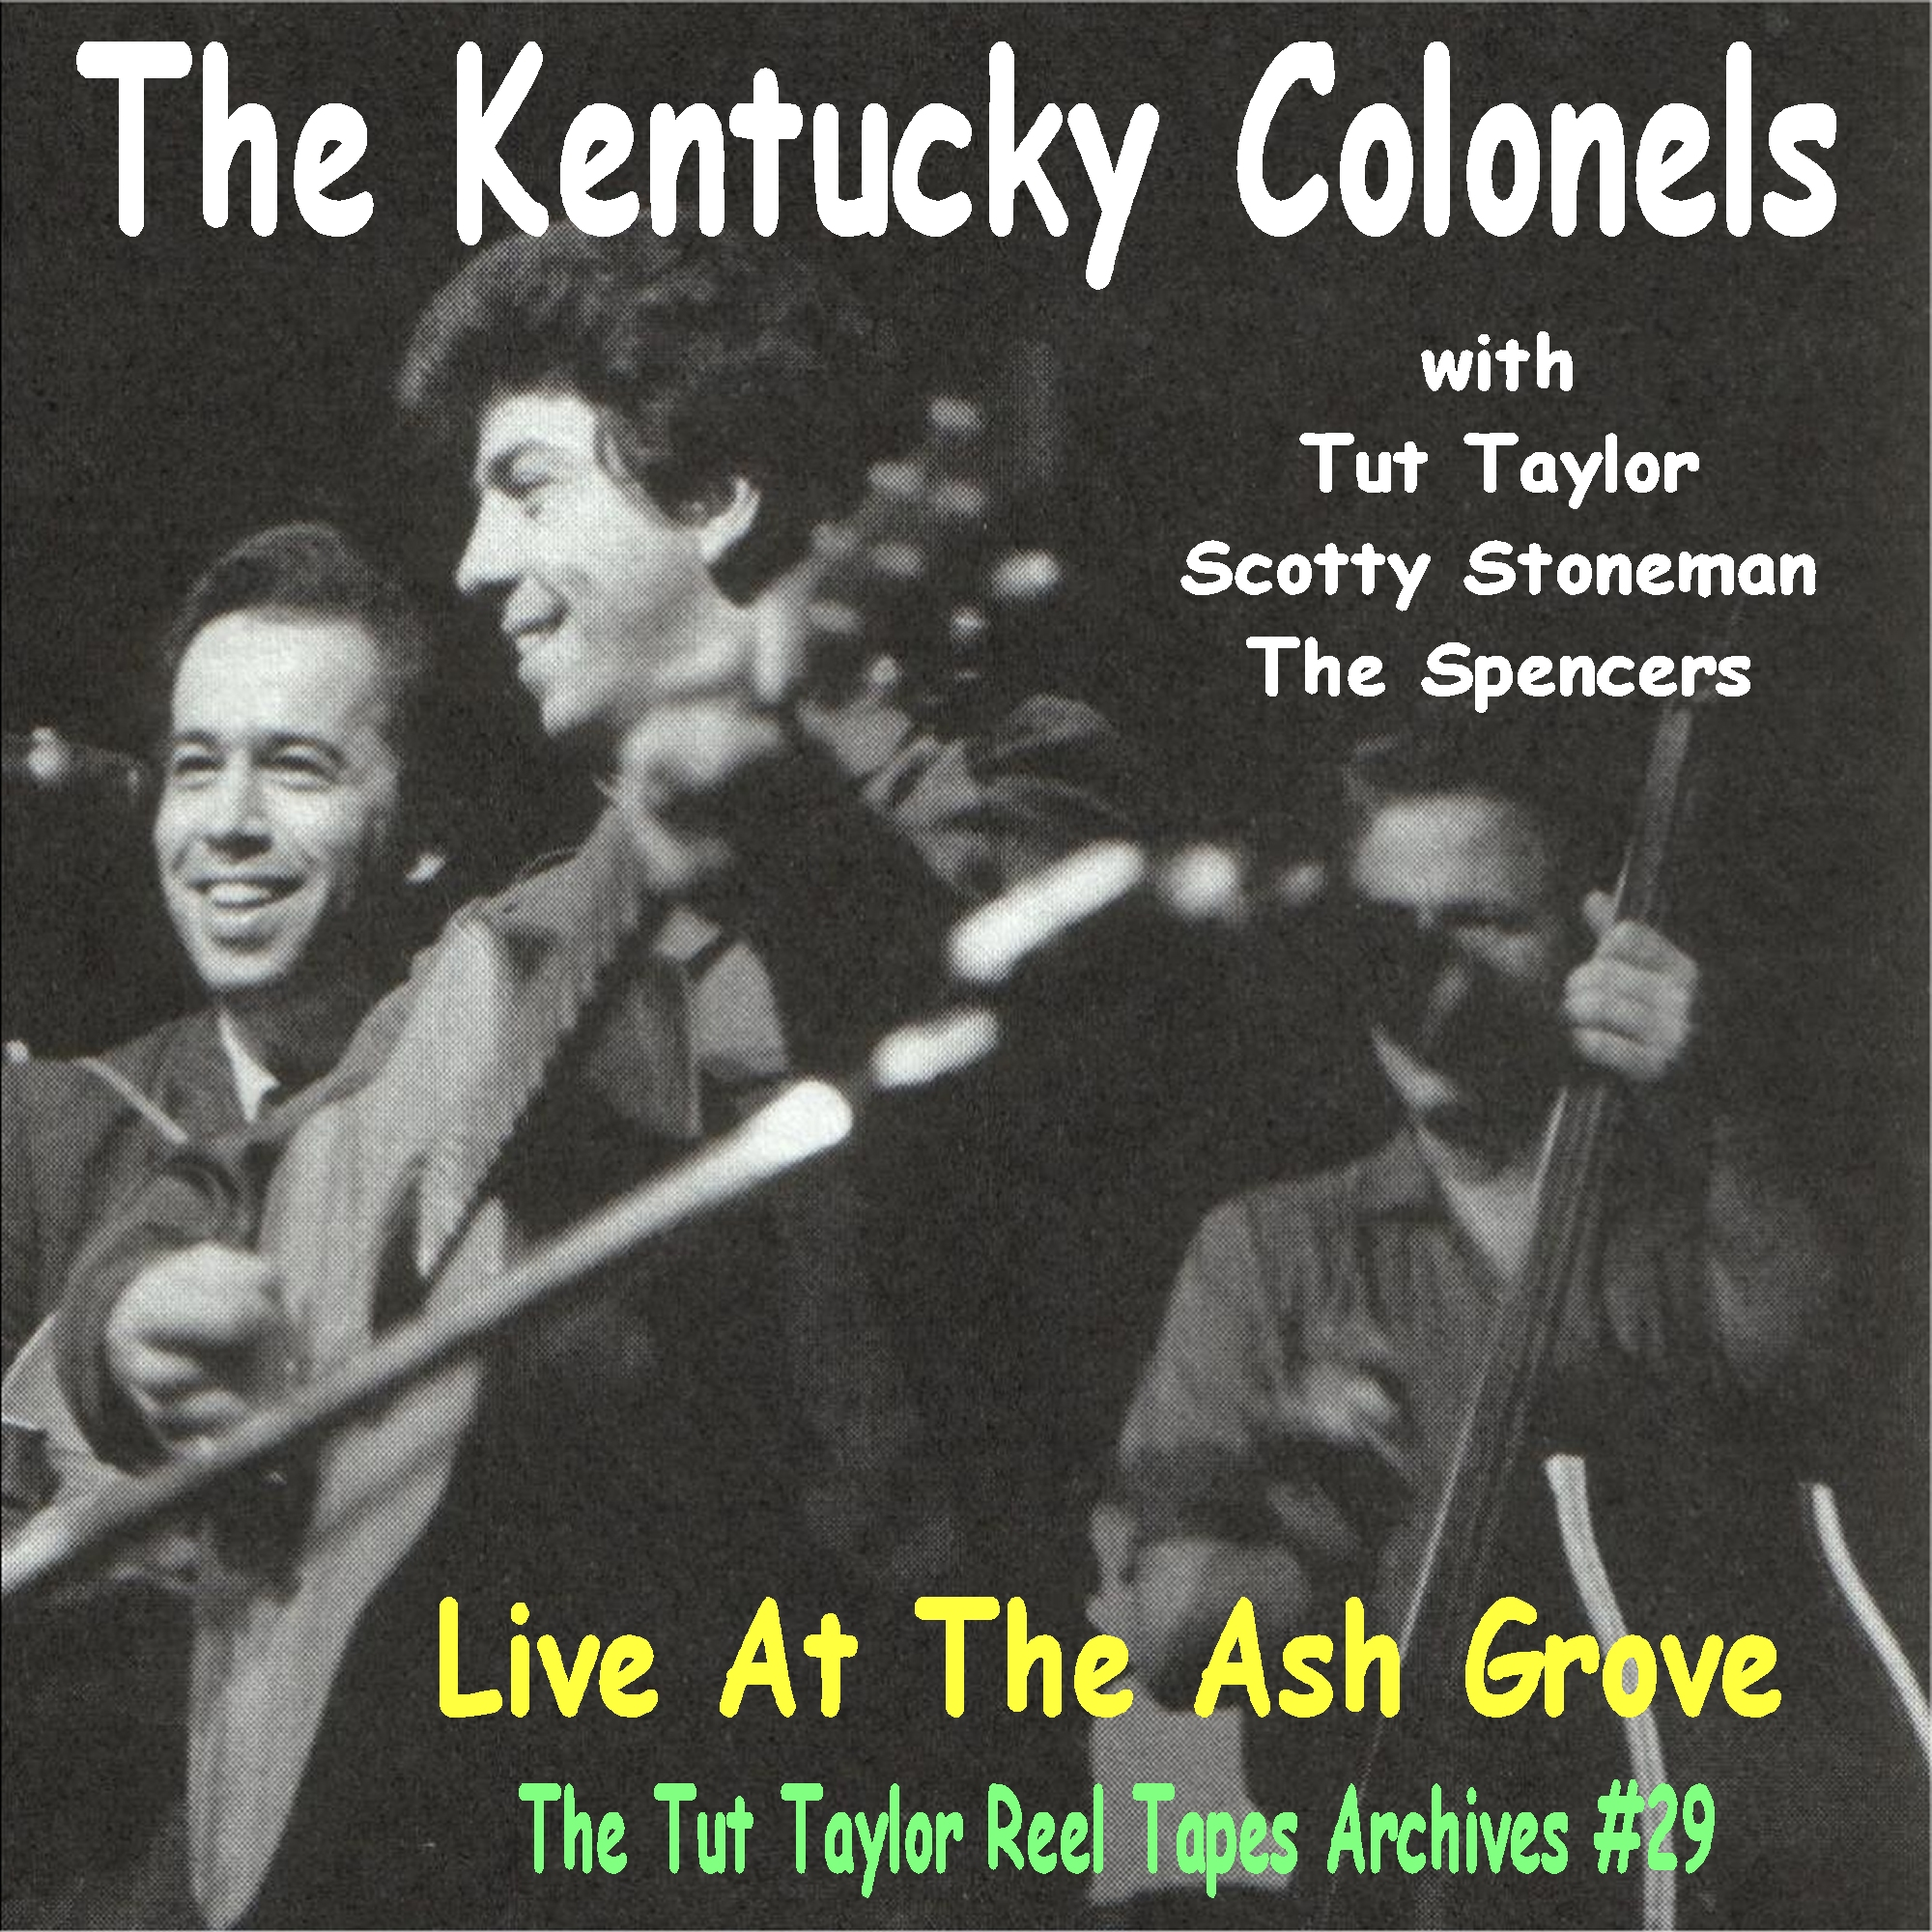 Index of /mp3/Temp/KentuckyColonels/Kentucky Colonels - Ash